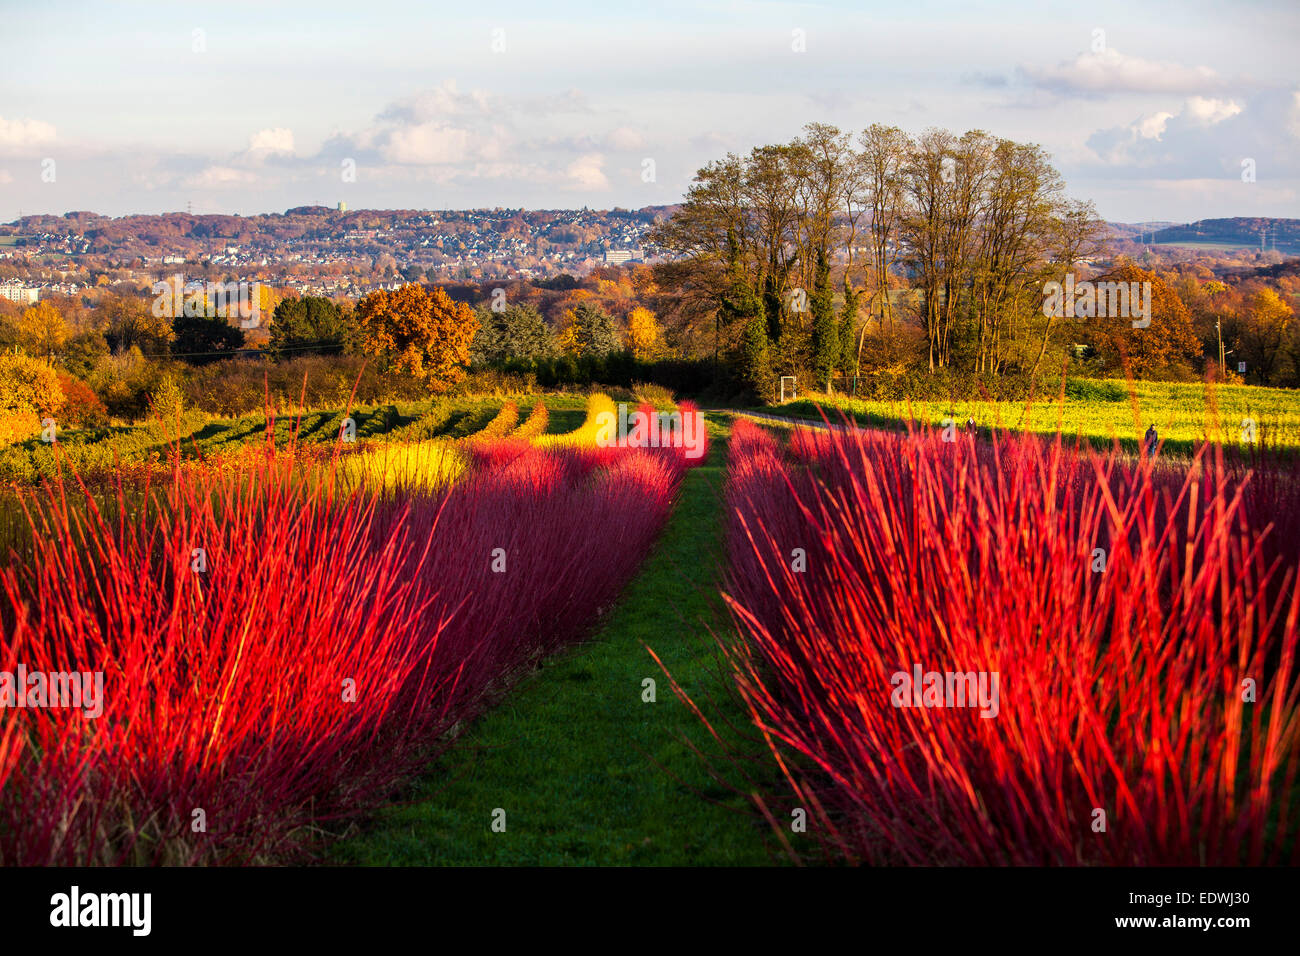 Red hedge plants, Siberian dogwood, Cornus alba sibirica, nursery, - Stock Image